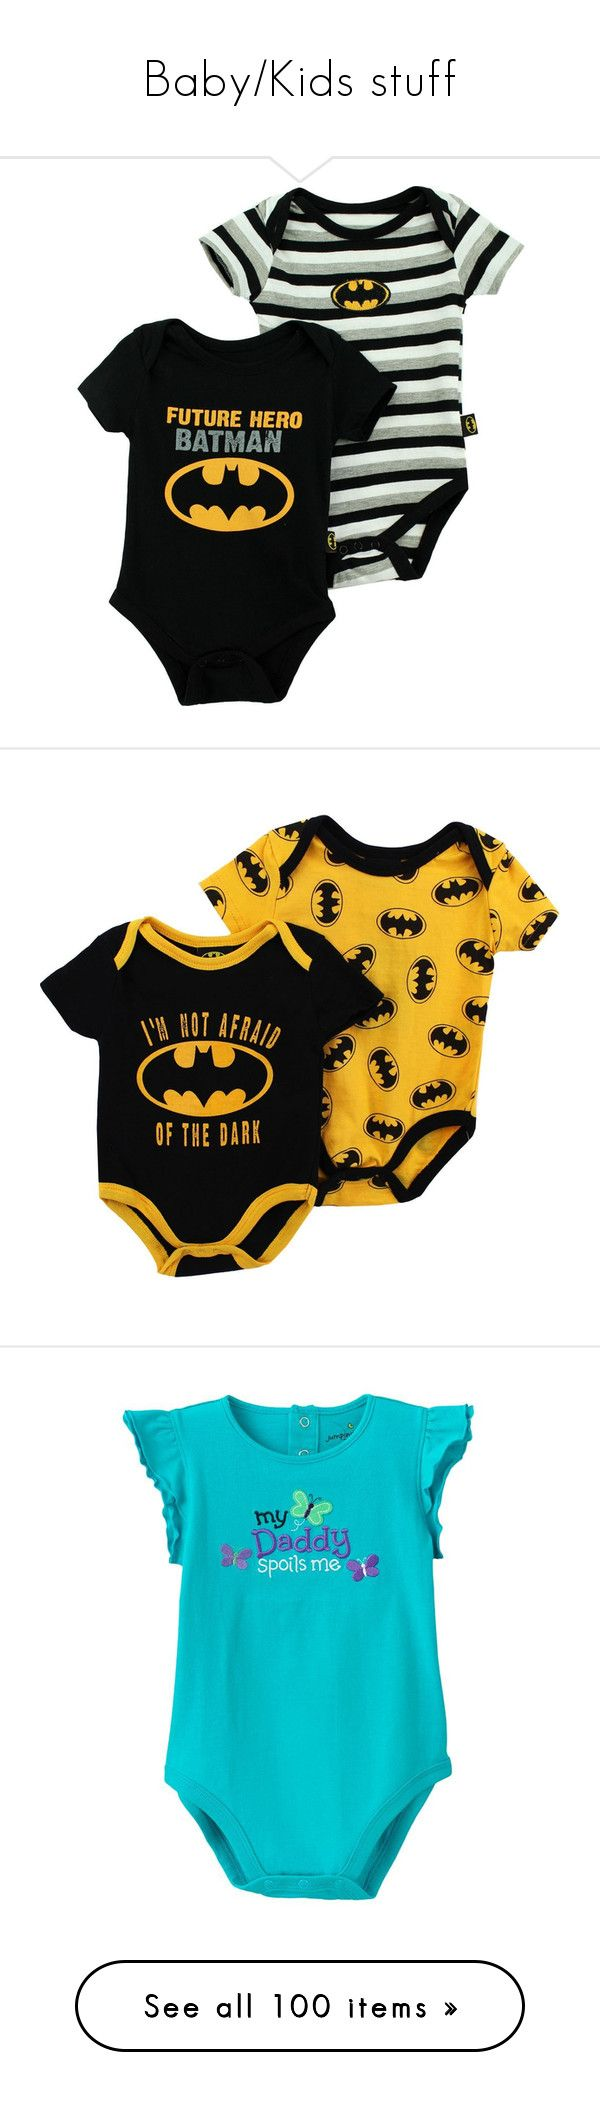 """Baby/Kids stuff"" by cissylion ❤ liked on Polyvore featuring baby, kids, baby boy, baby boy clothes, baby clothes, batman, baby stuff, baby girl, baby girl clothes and baby onesies"